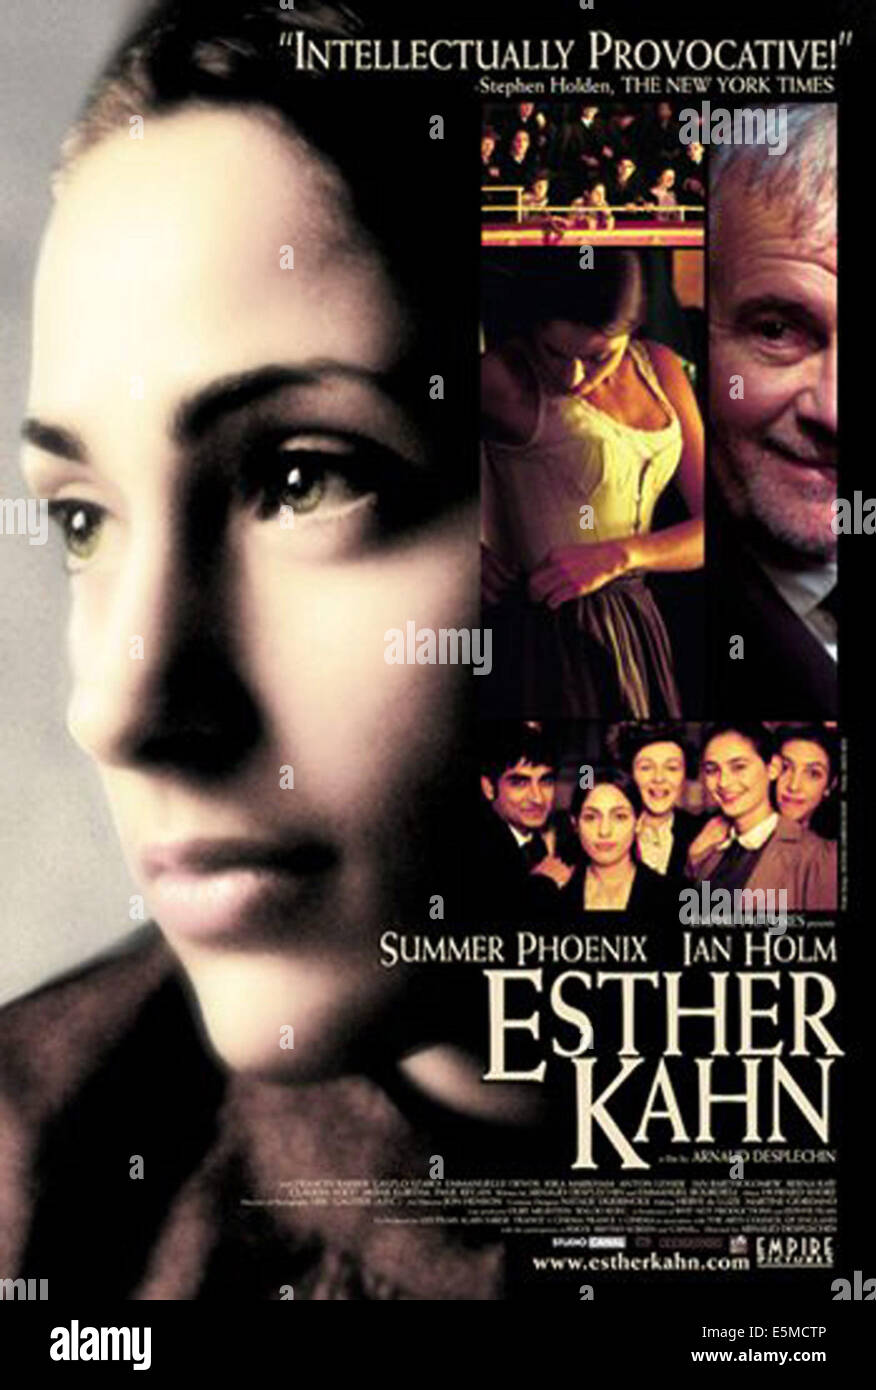 ESTHER KAHN, Summer Phoenix, Ian Holm, 2000, (c) Empire Pictures/courtesy Everett Collection - Stock Image